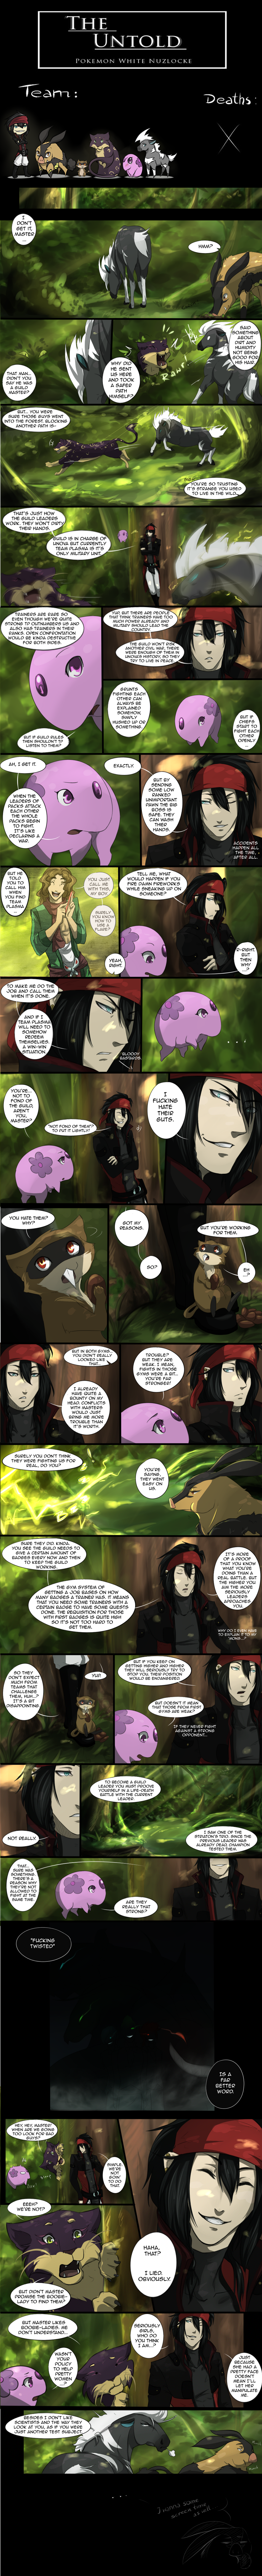 The Untold - part 33 by Antarija